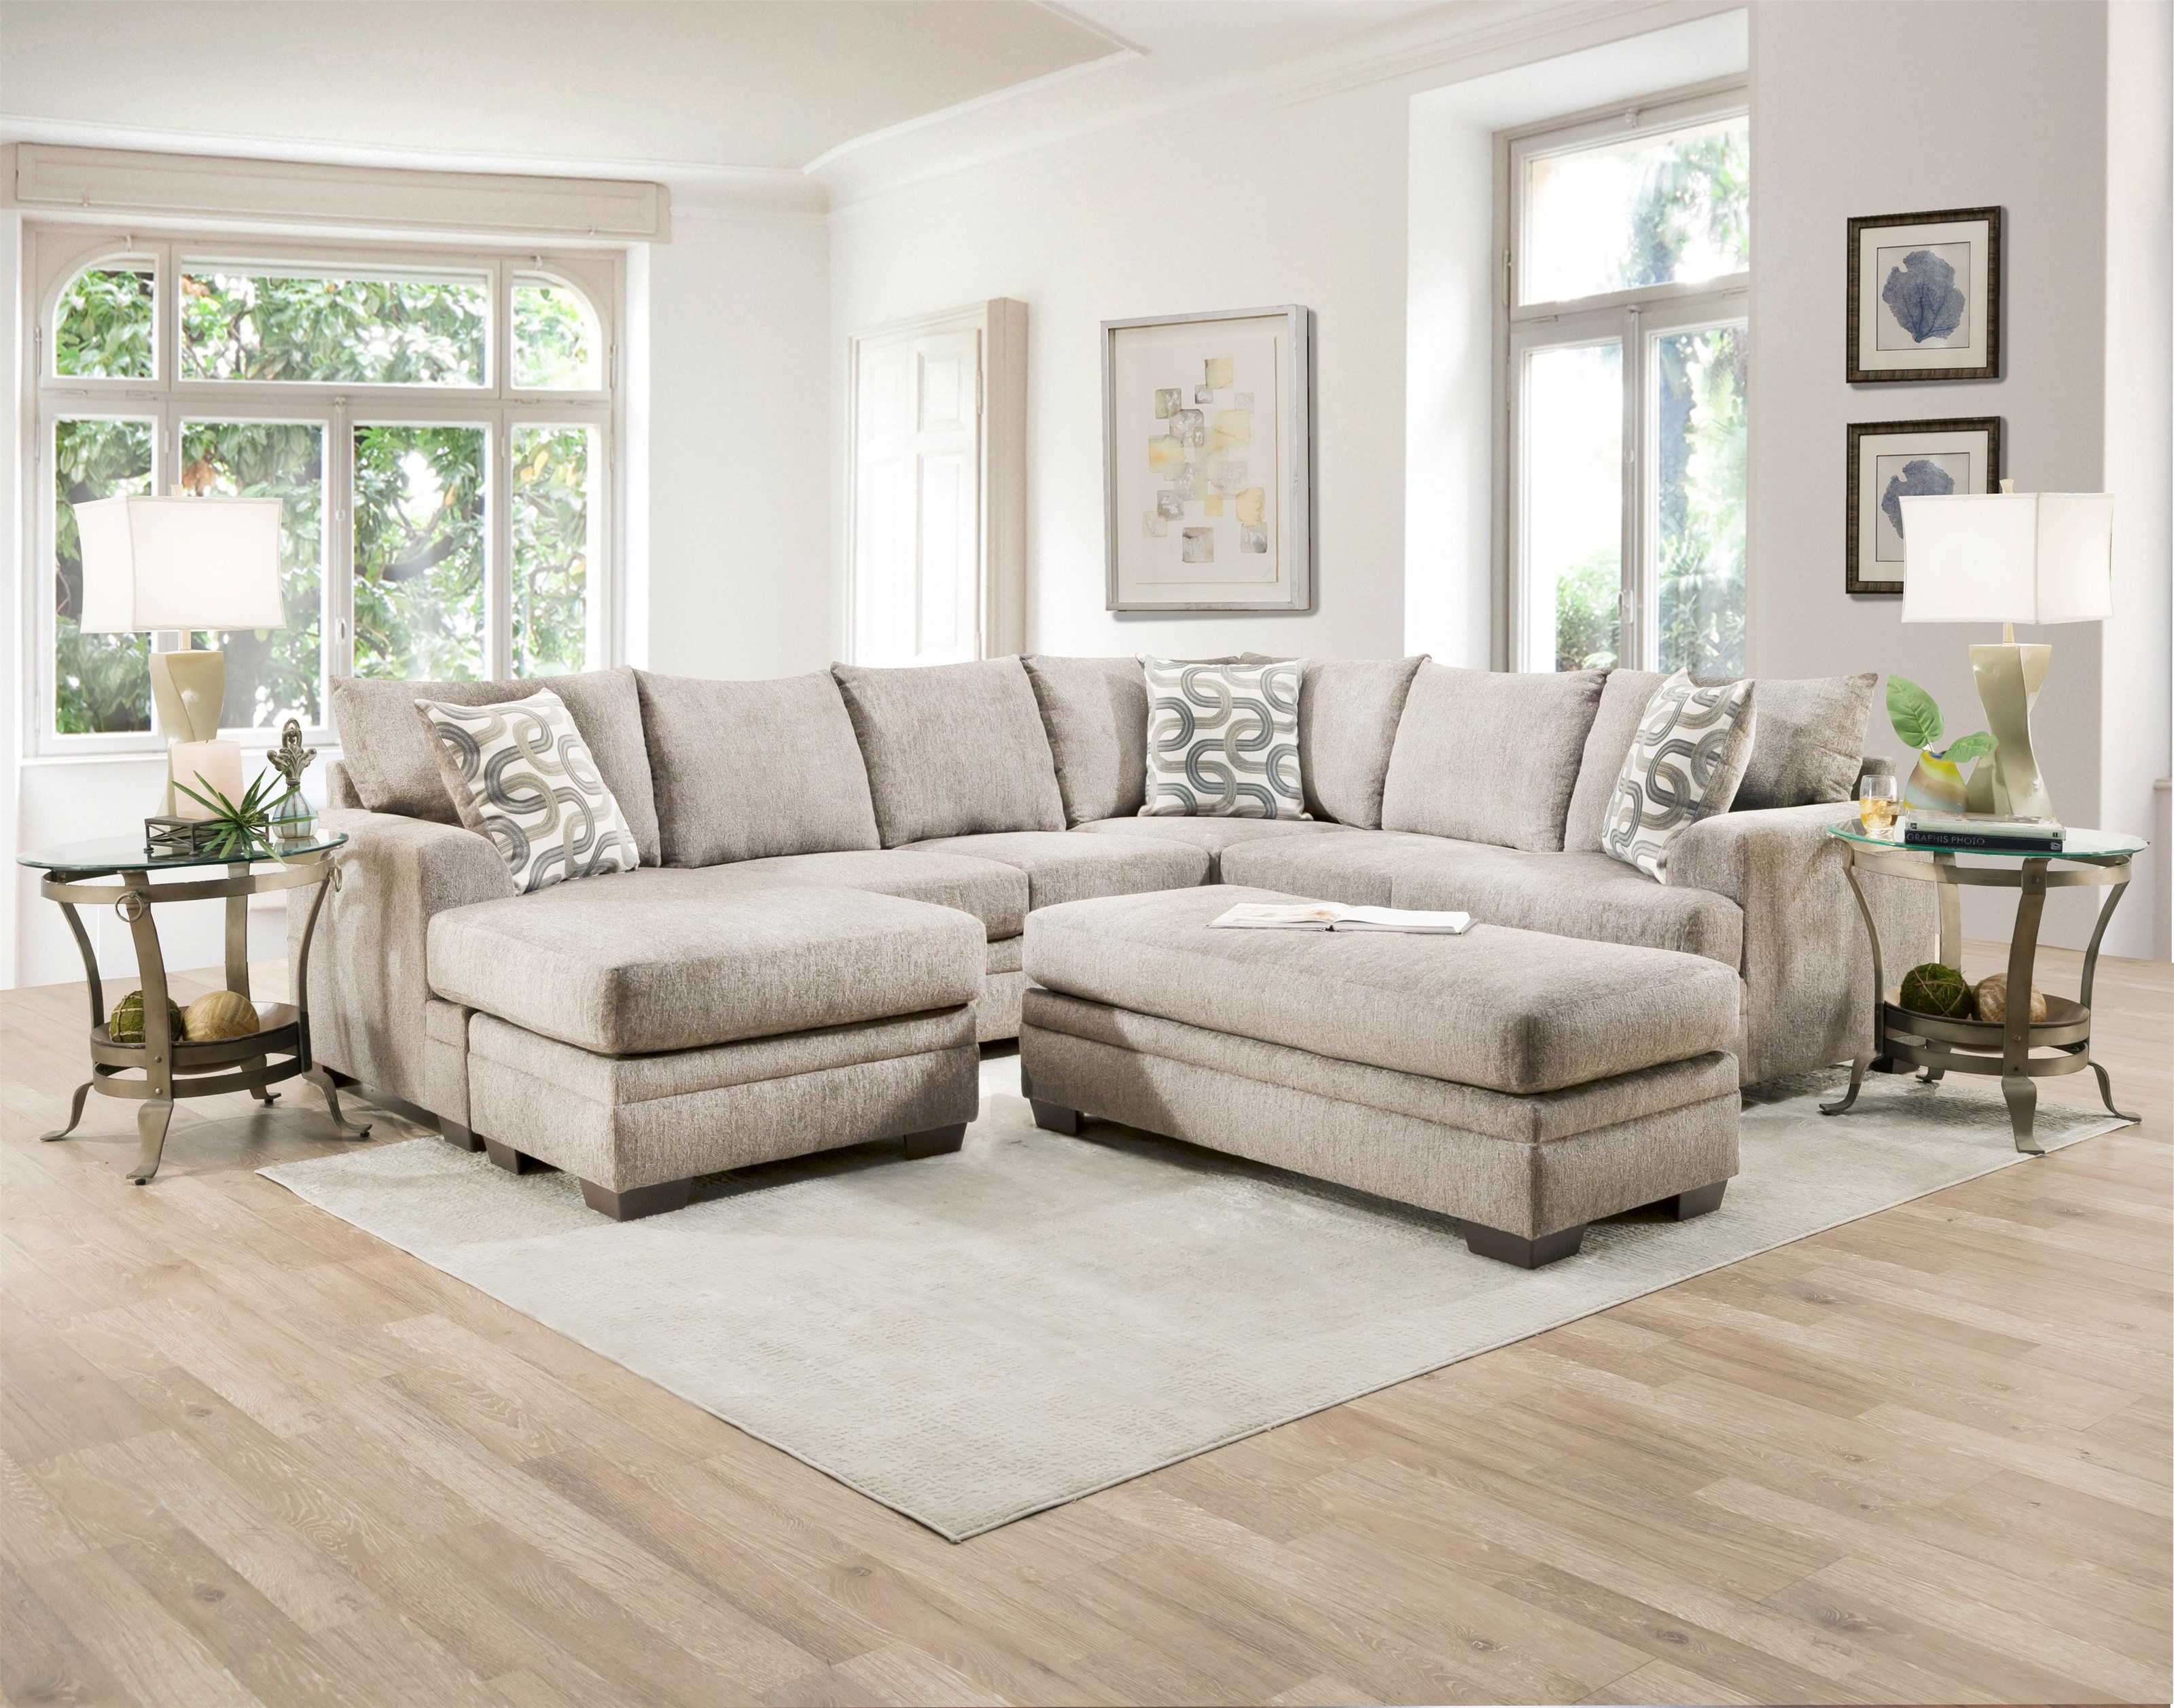 1310 CREAM TWO PIECE SECTIONAL by Behold Home at Furniture Fair - North Carolina